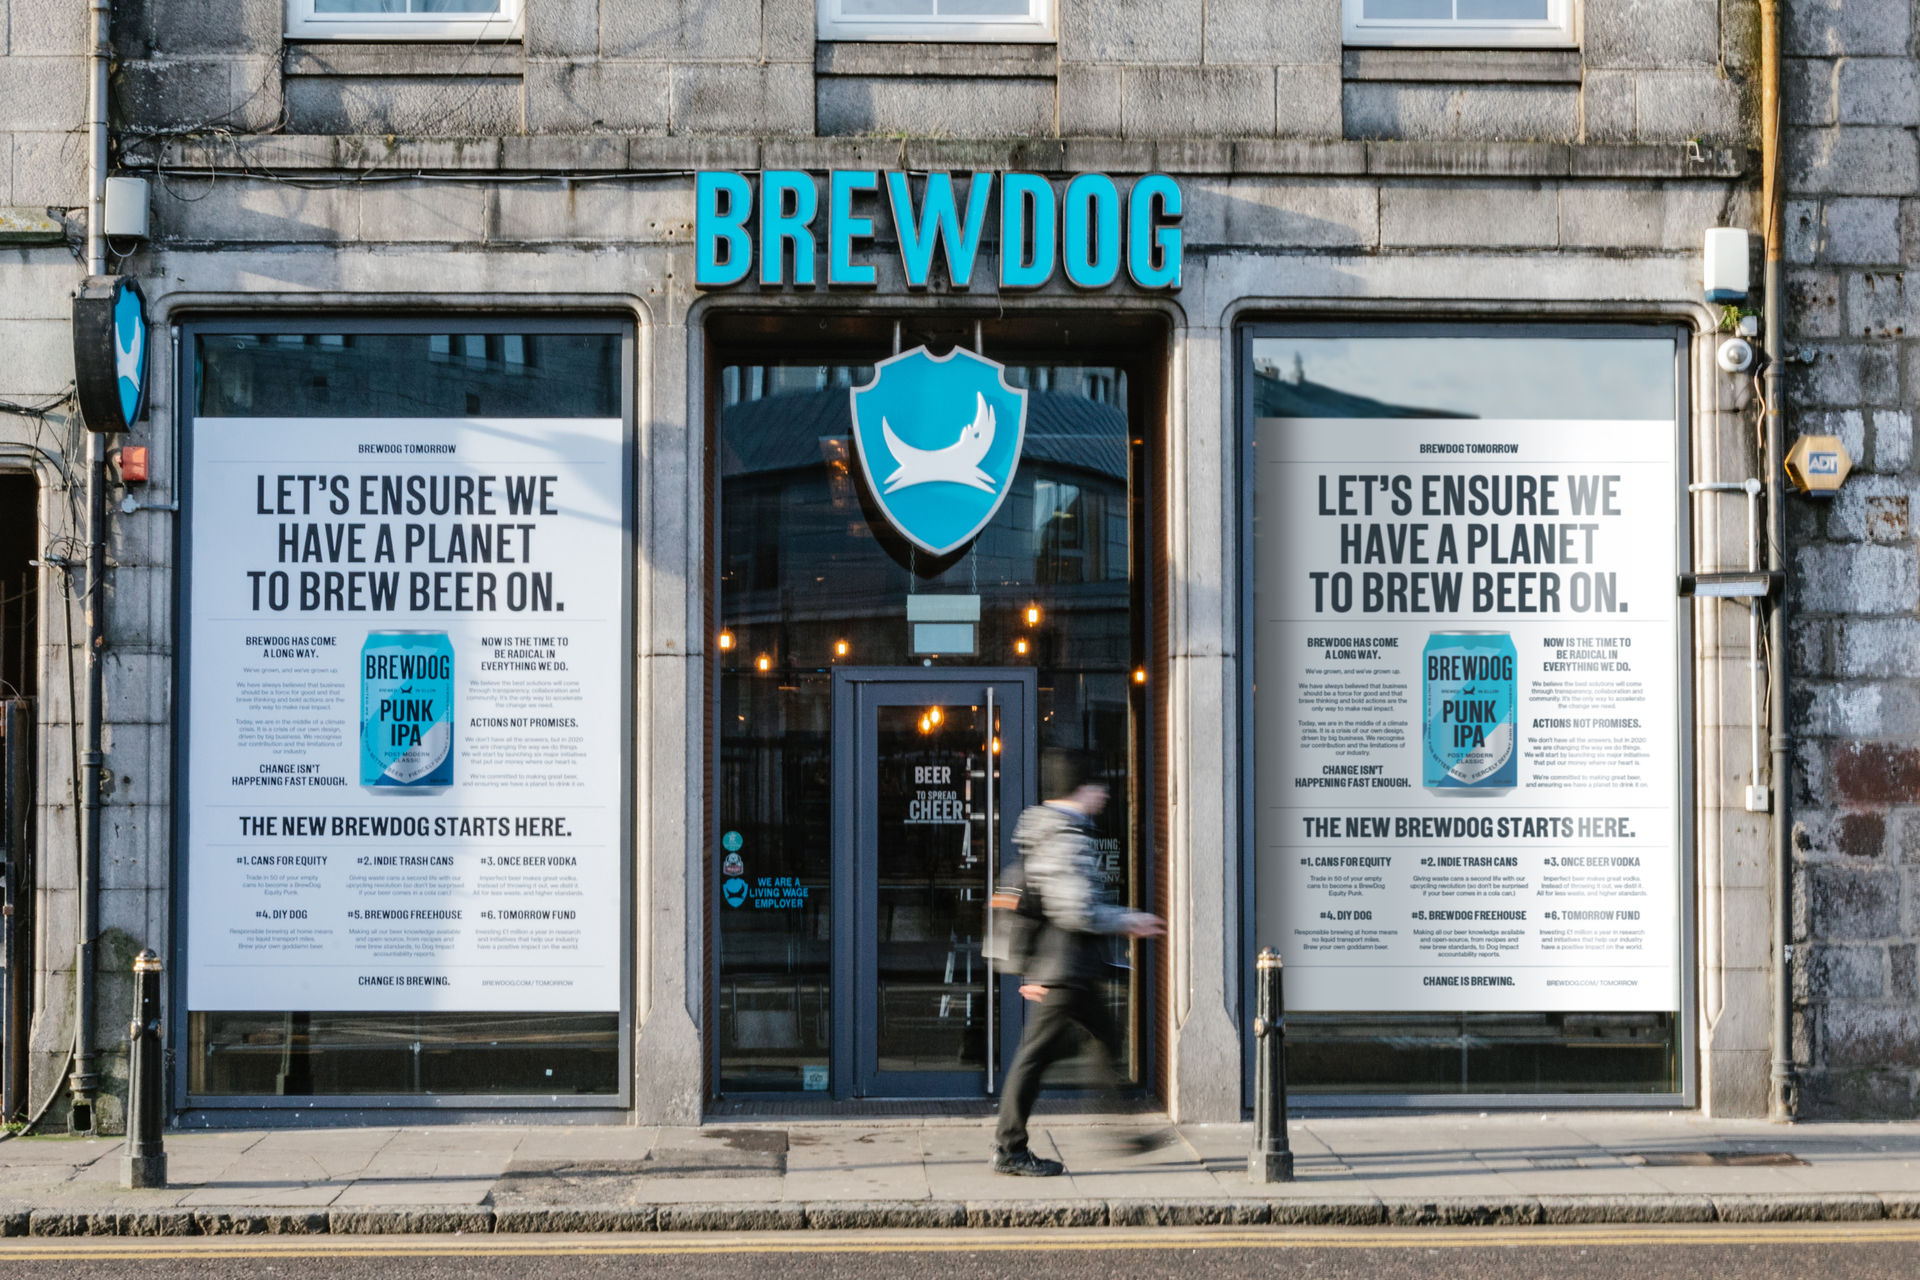 From 2007 to 2020. BrewDog have today launched their new identity and sustainability initiatives.